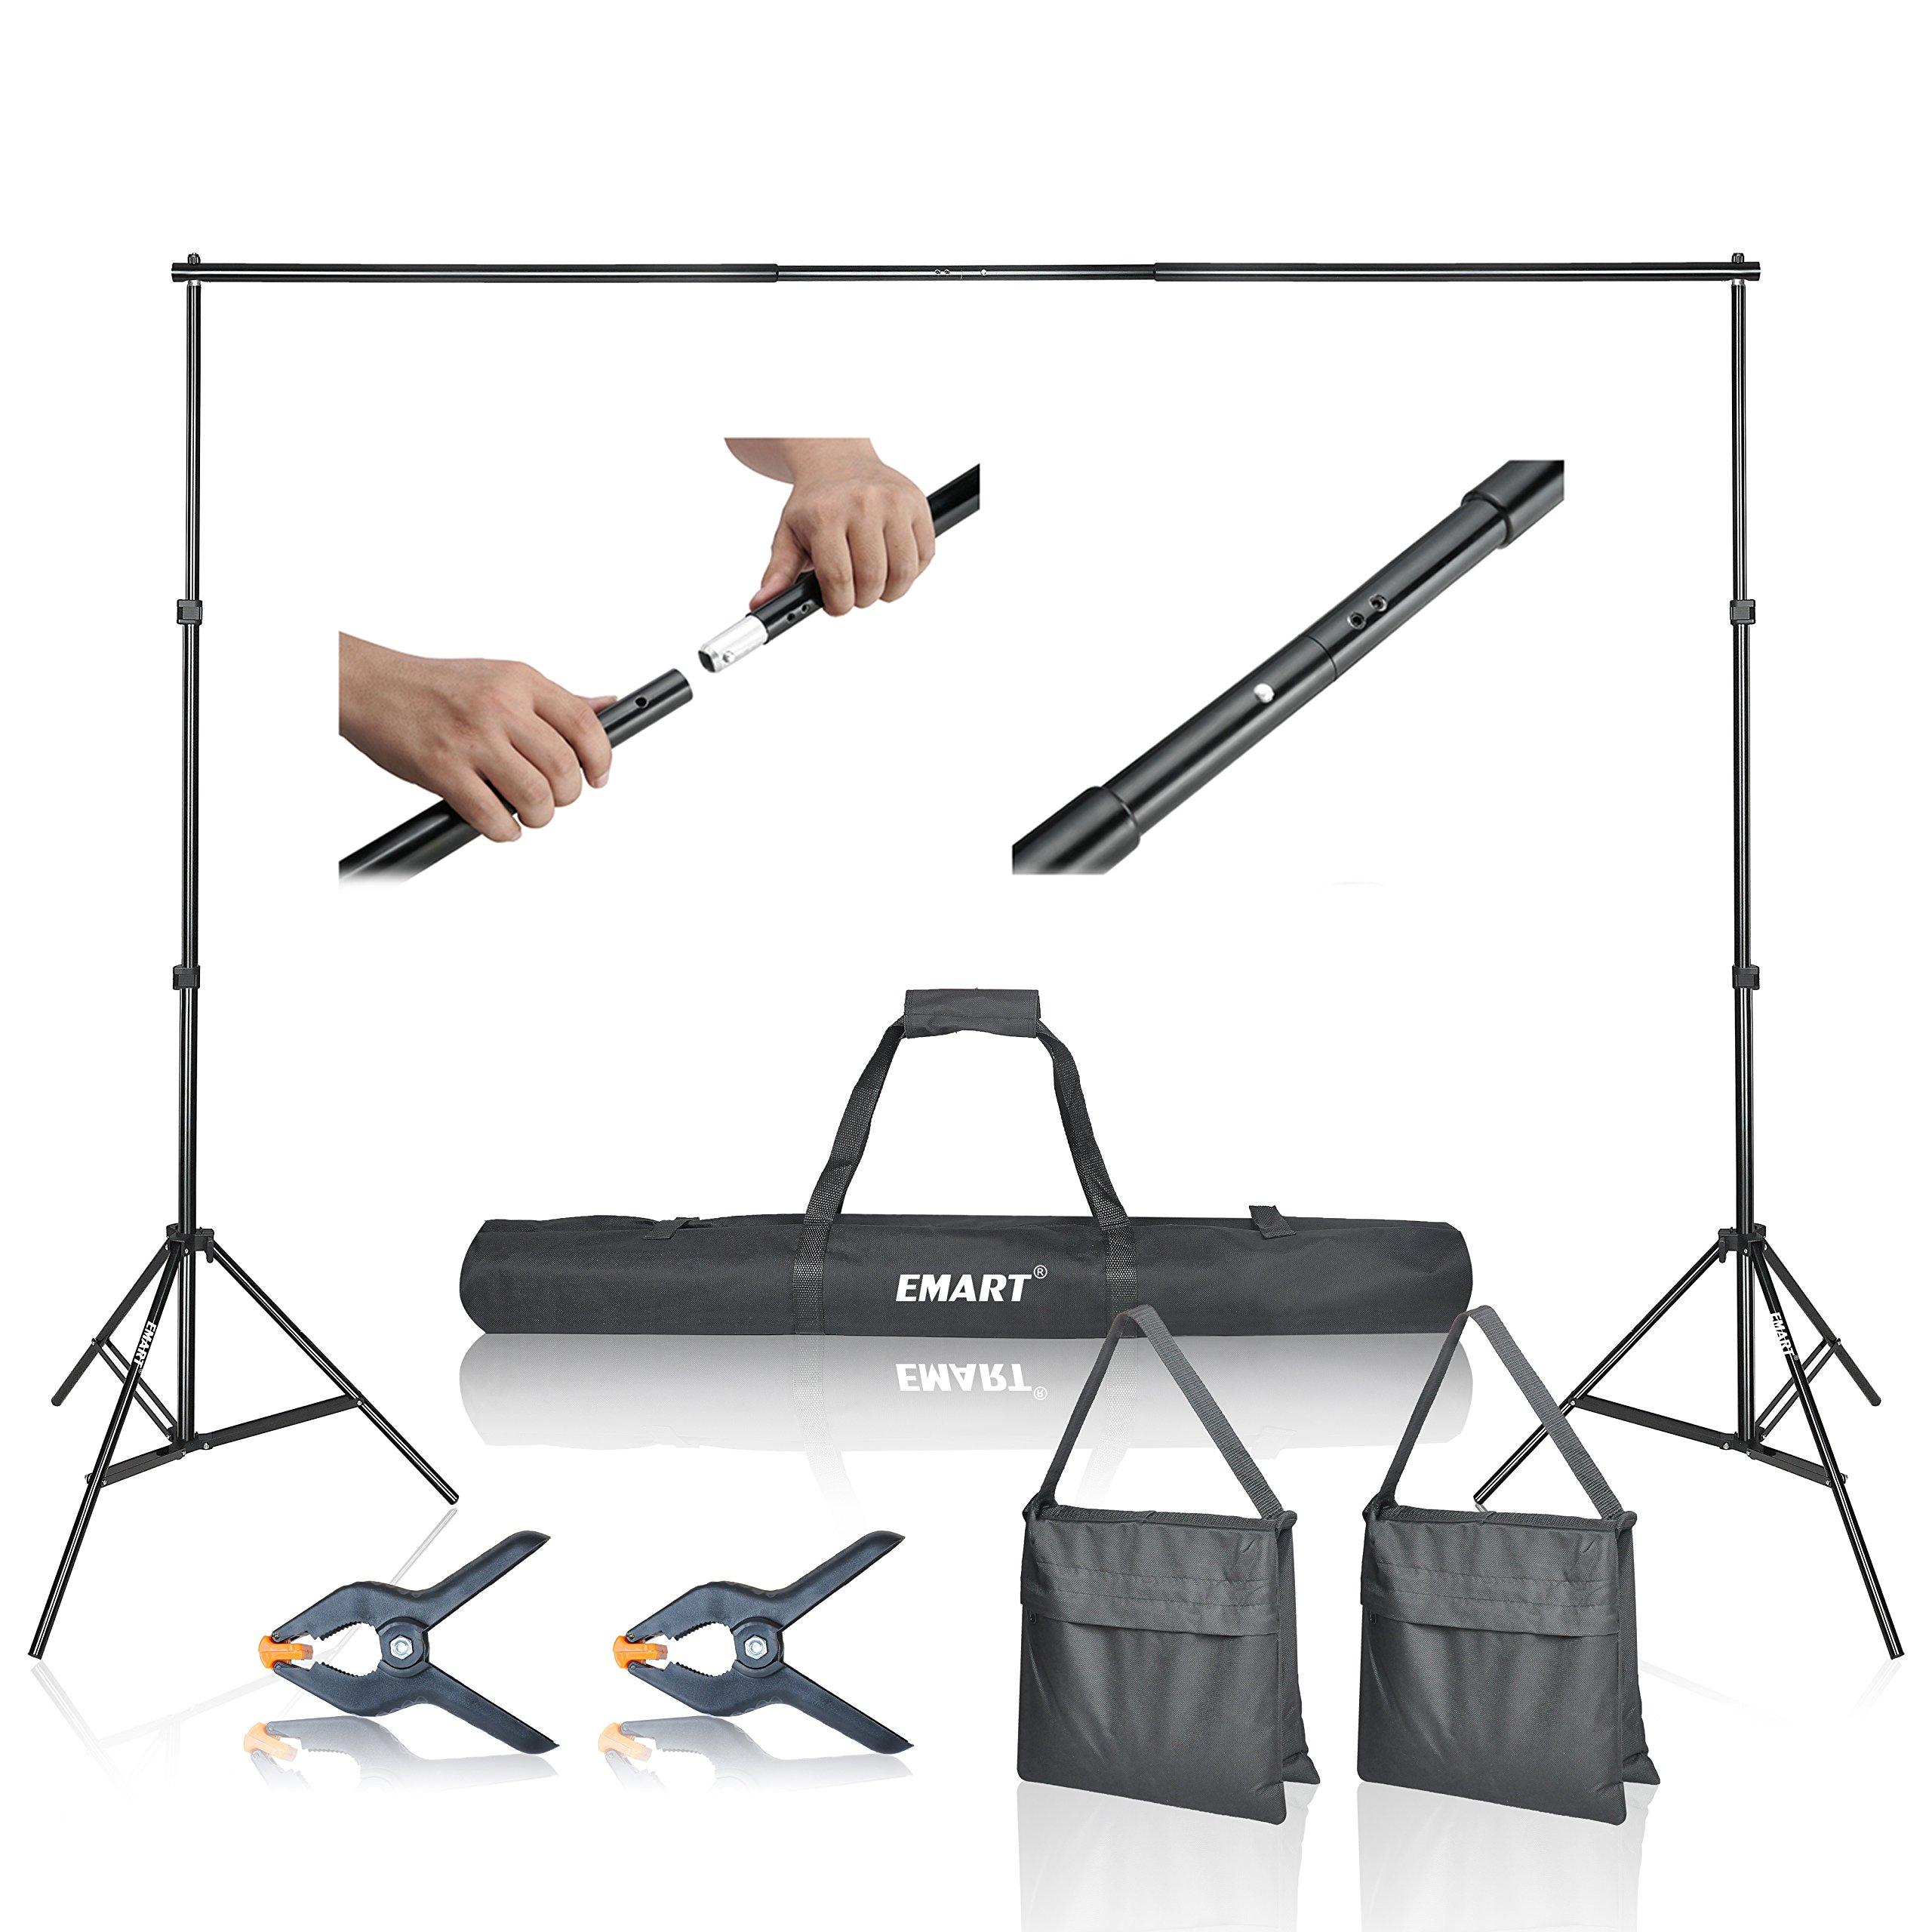 Emart Photo Video Studio 10Ft Adjustable Background Stand Backdrop Support System Kit with Carry Bag by EMART